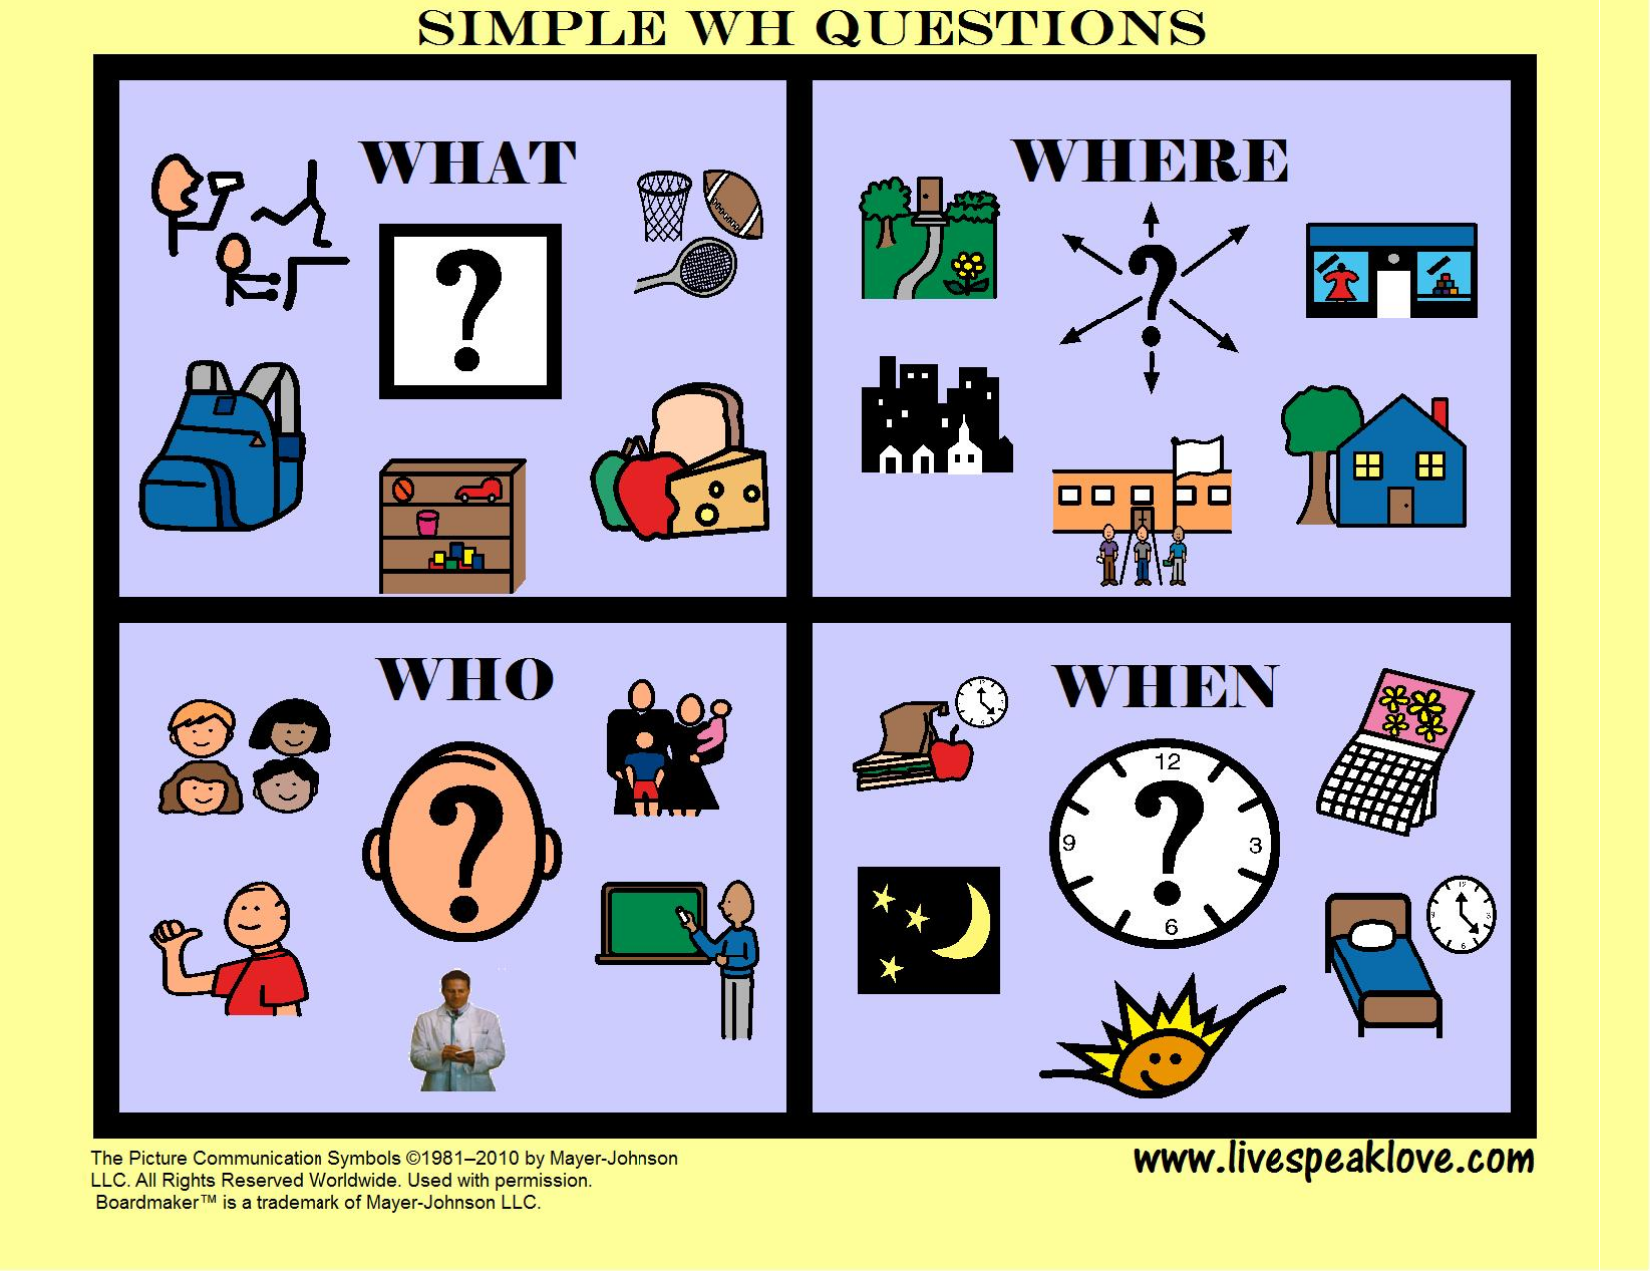 Free Wh Question Visual Live Speak Love Llc